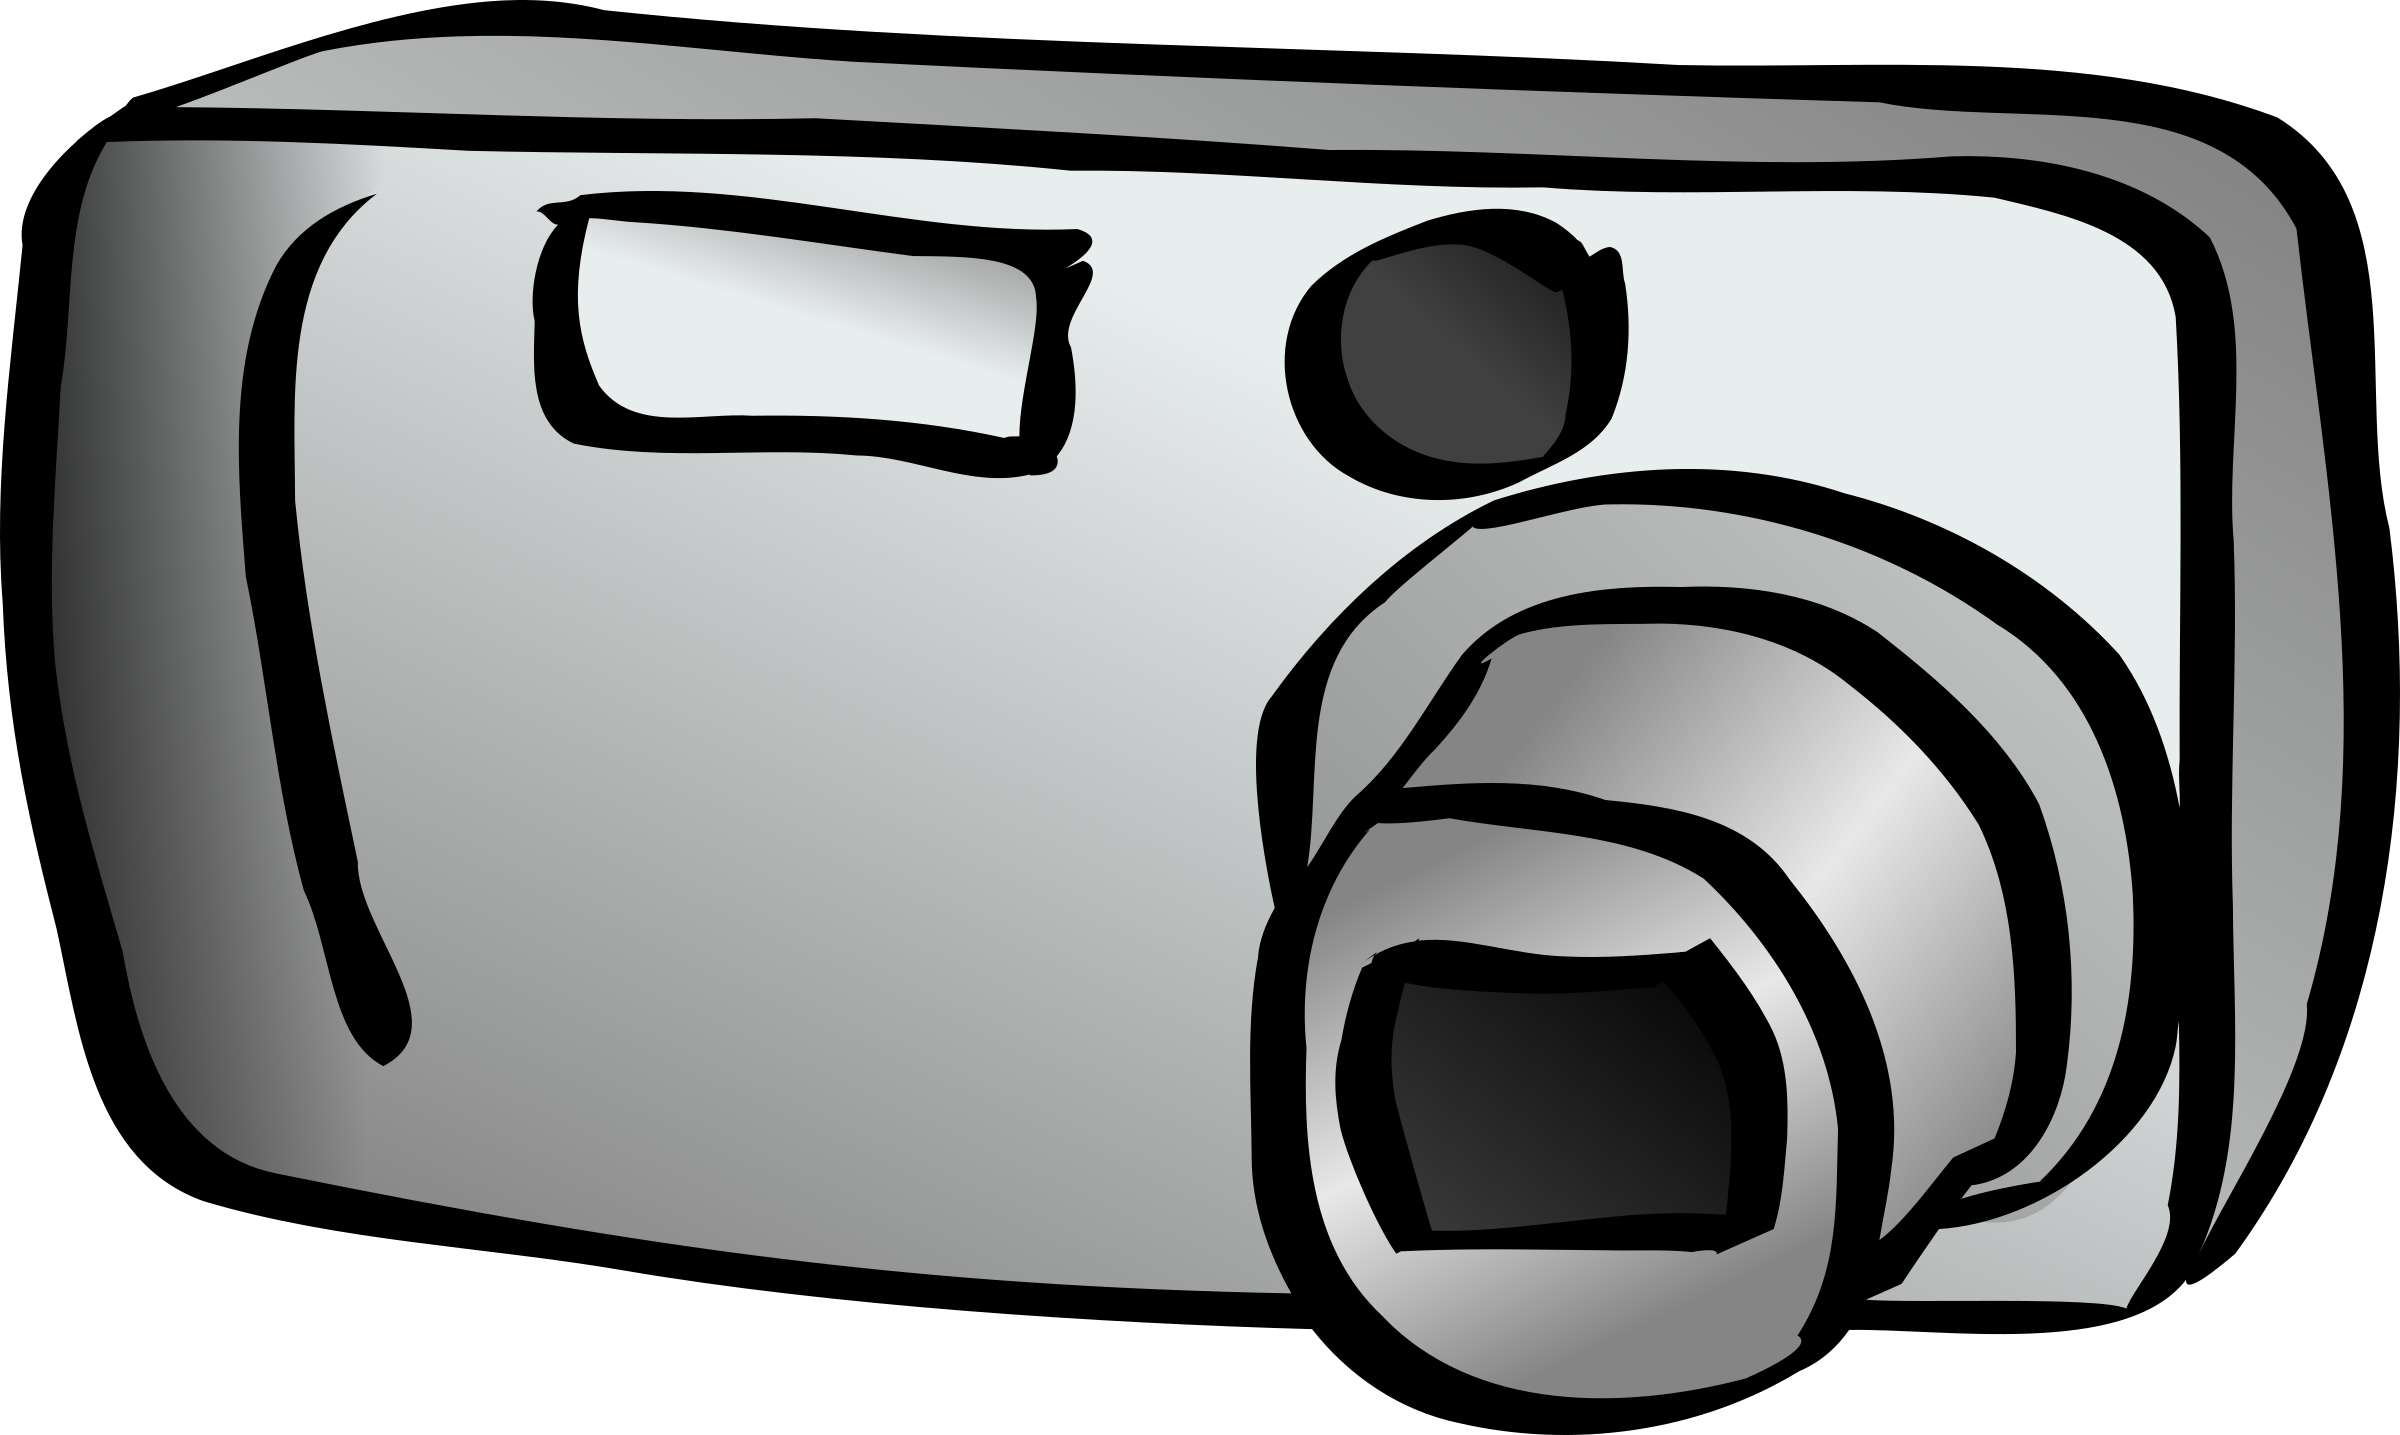 Clip camera royalty free. Animated svg freeuse